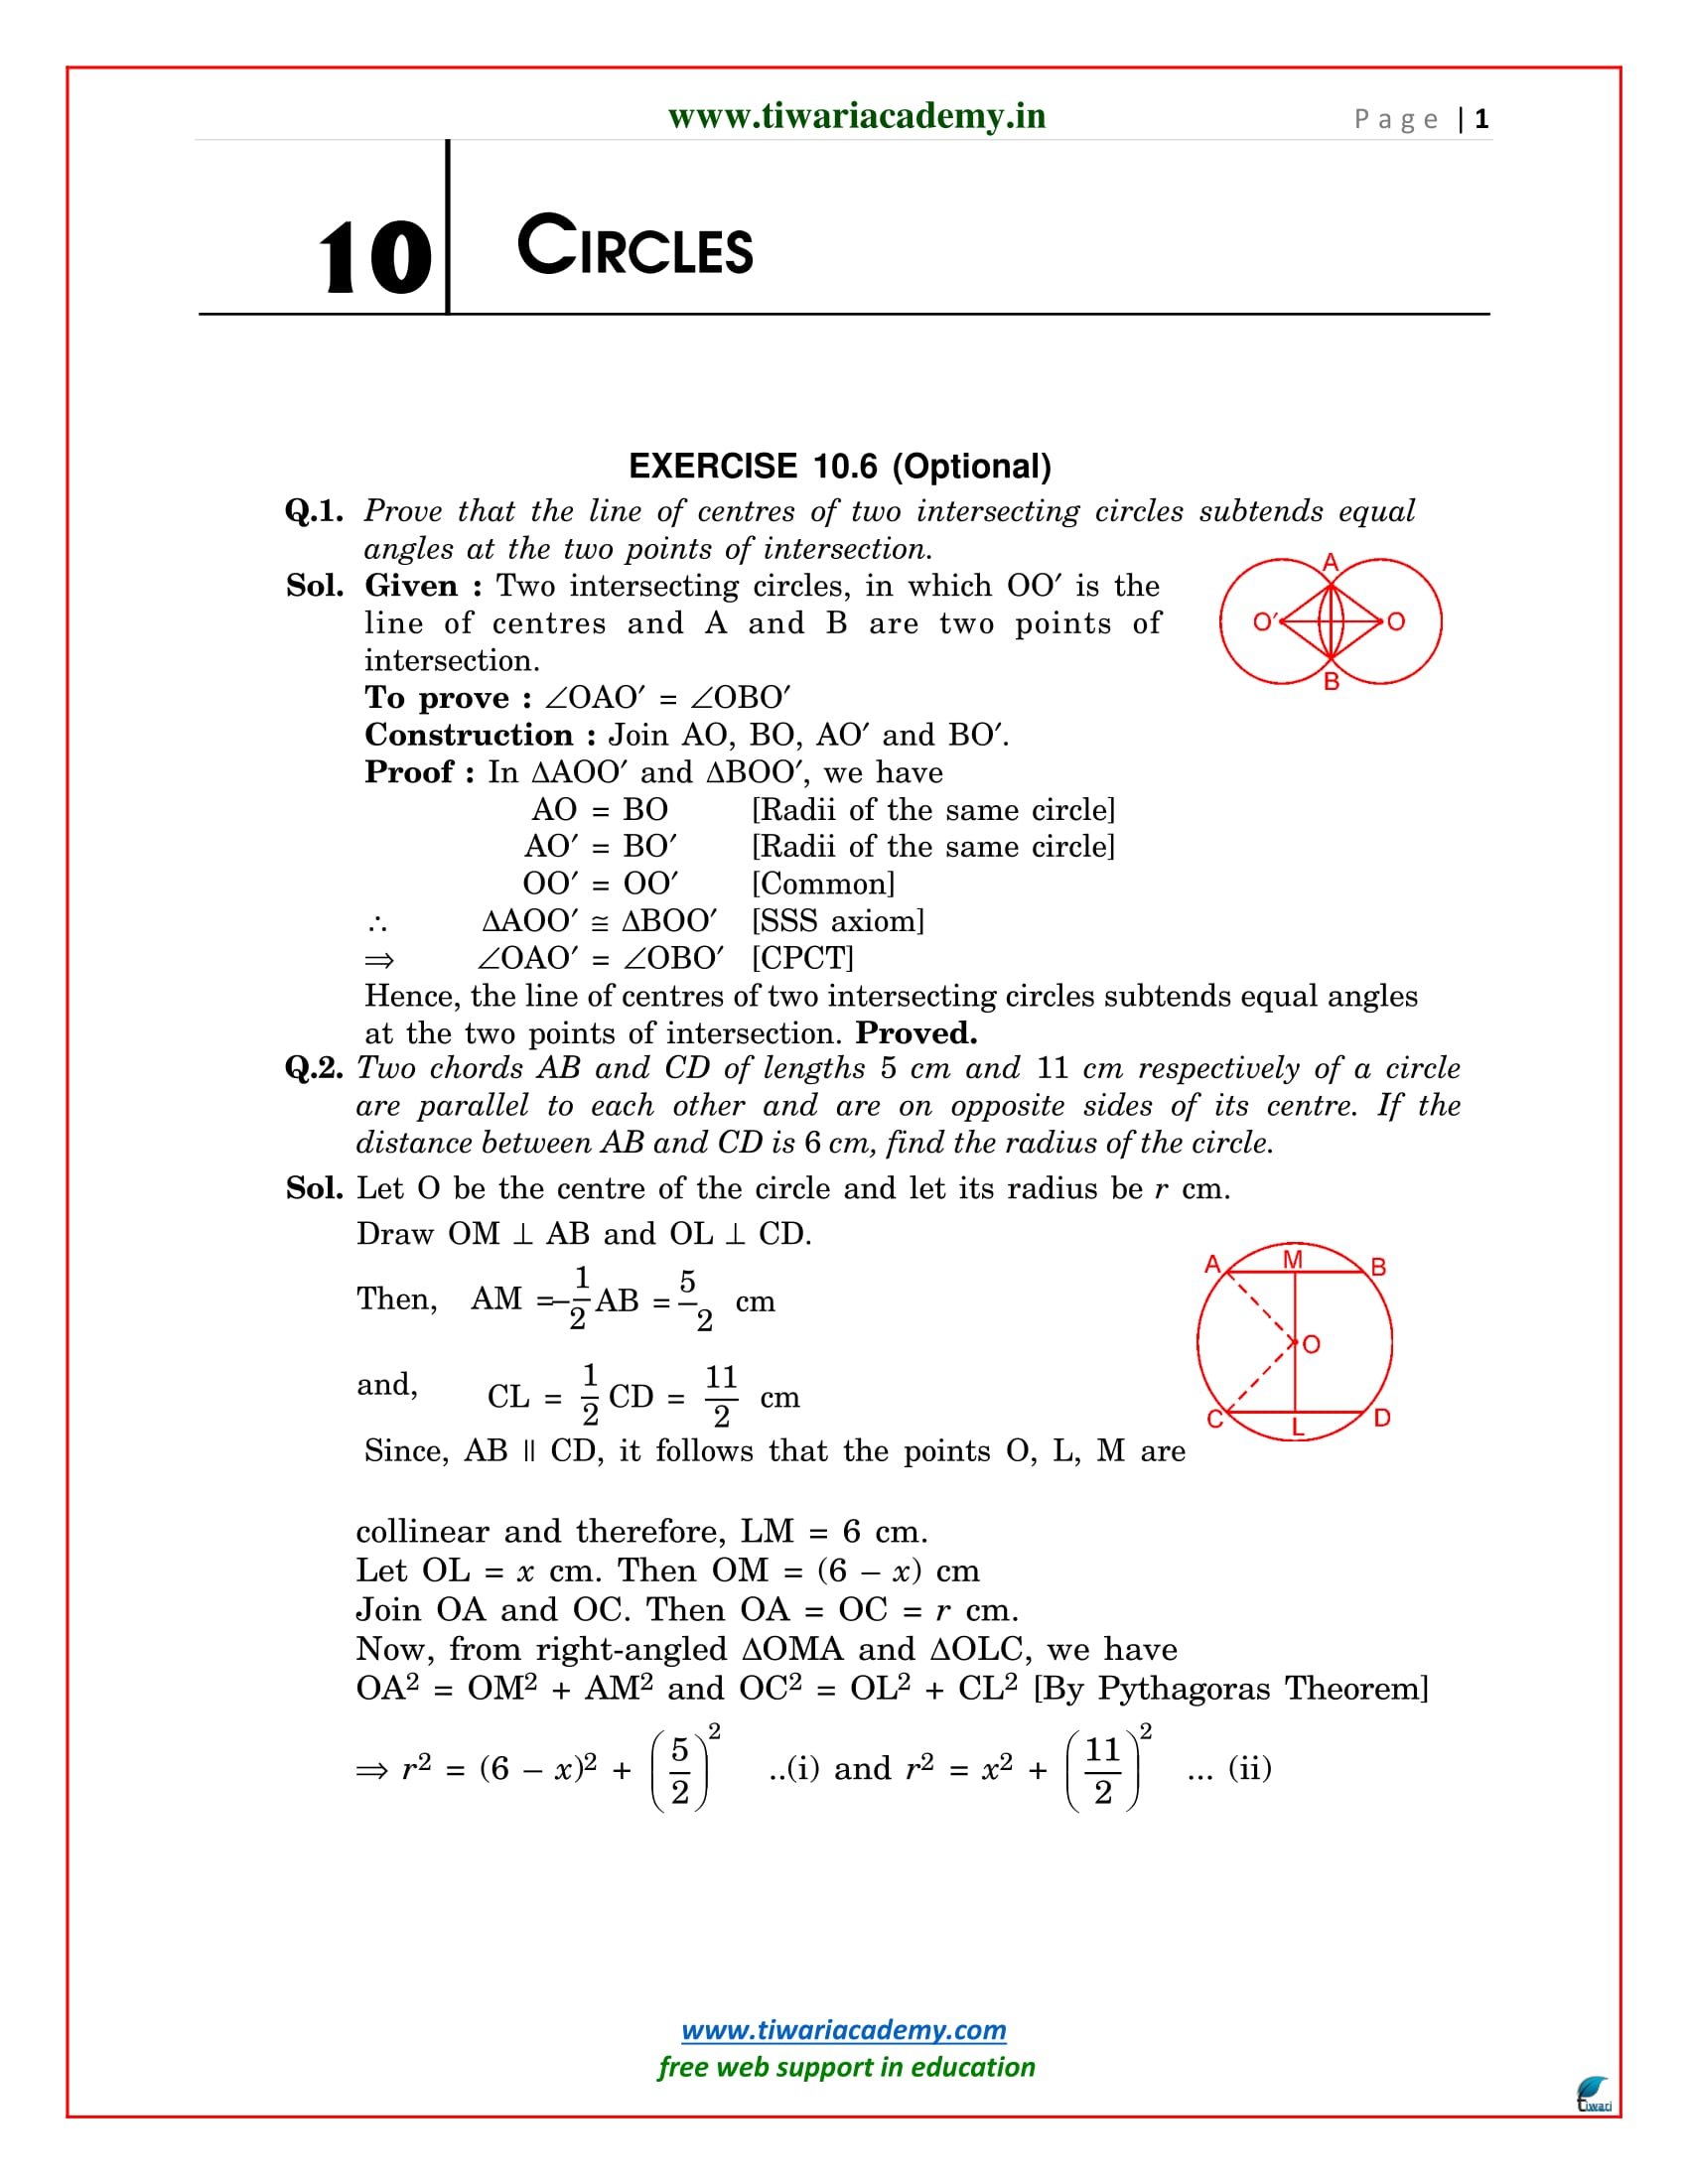 NCERT Solutions for Class 9 Maths Chapter 10 Exercise 10.6